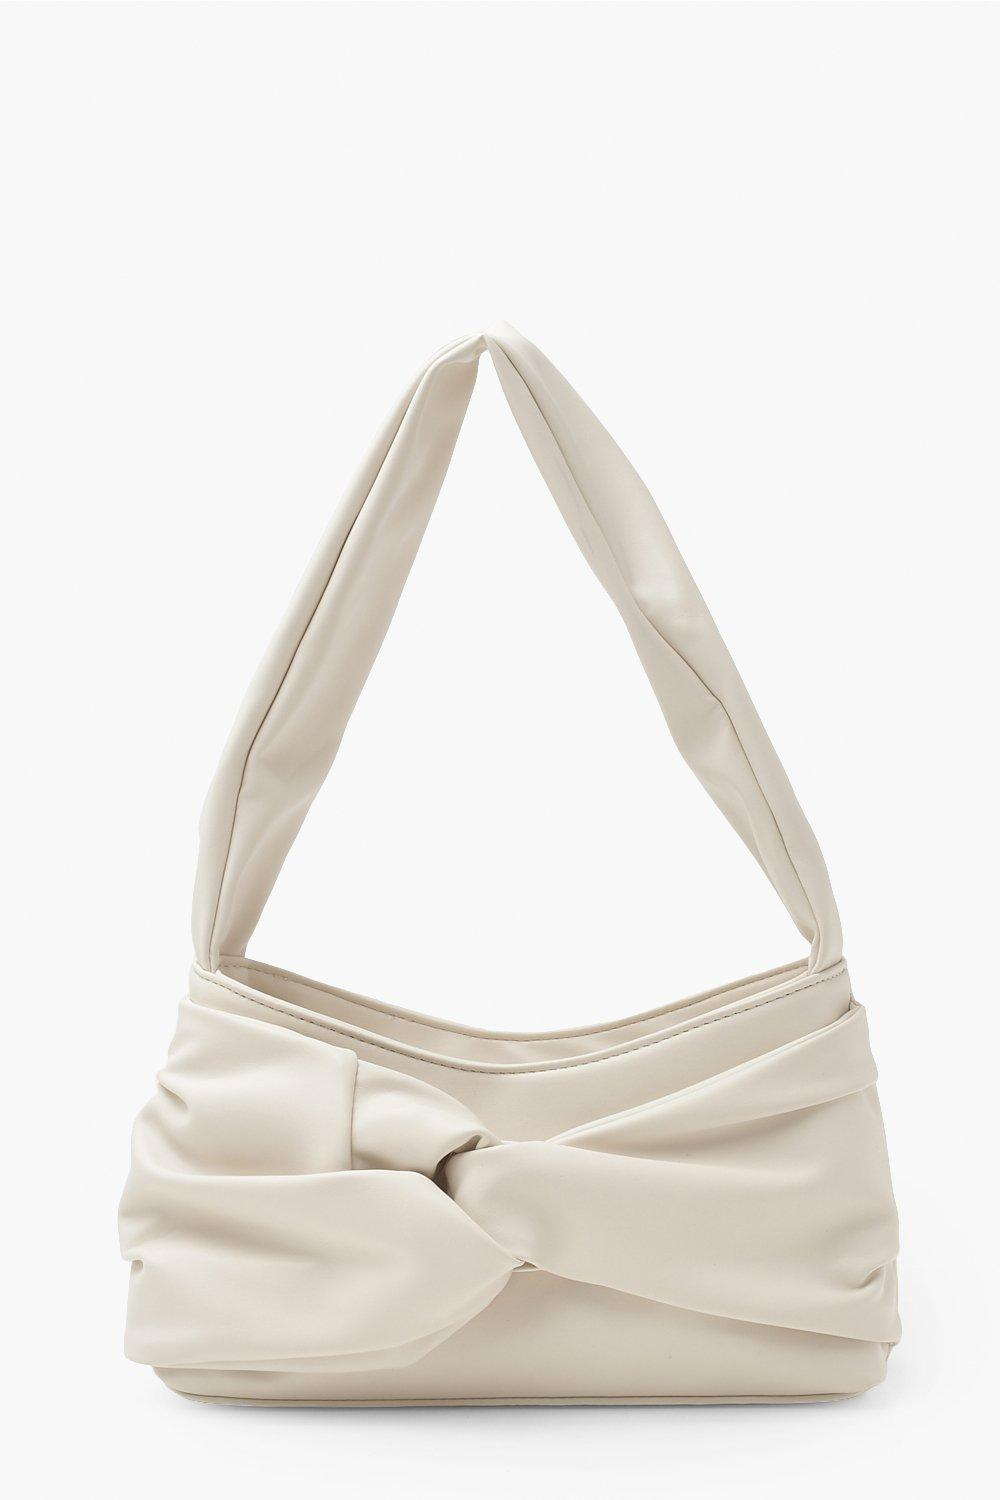 Boohoo Pu Front Knot Underarm Bag, Ivory